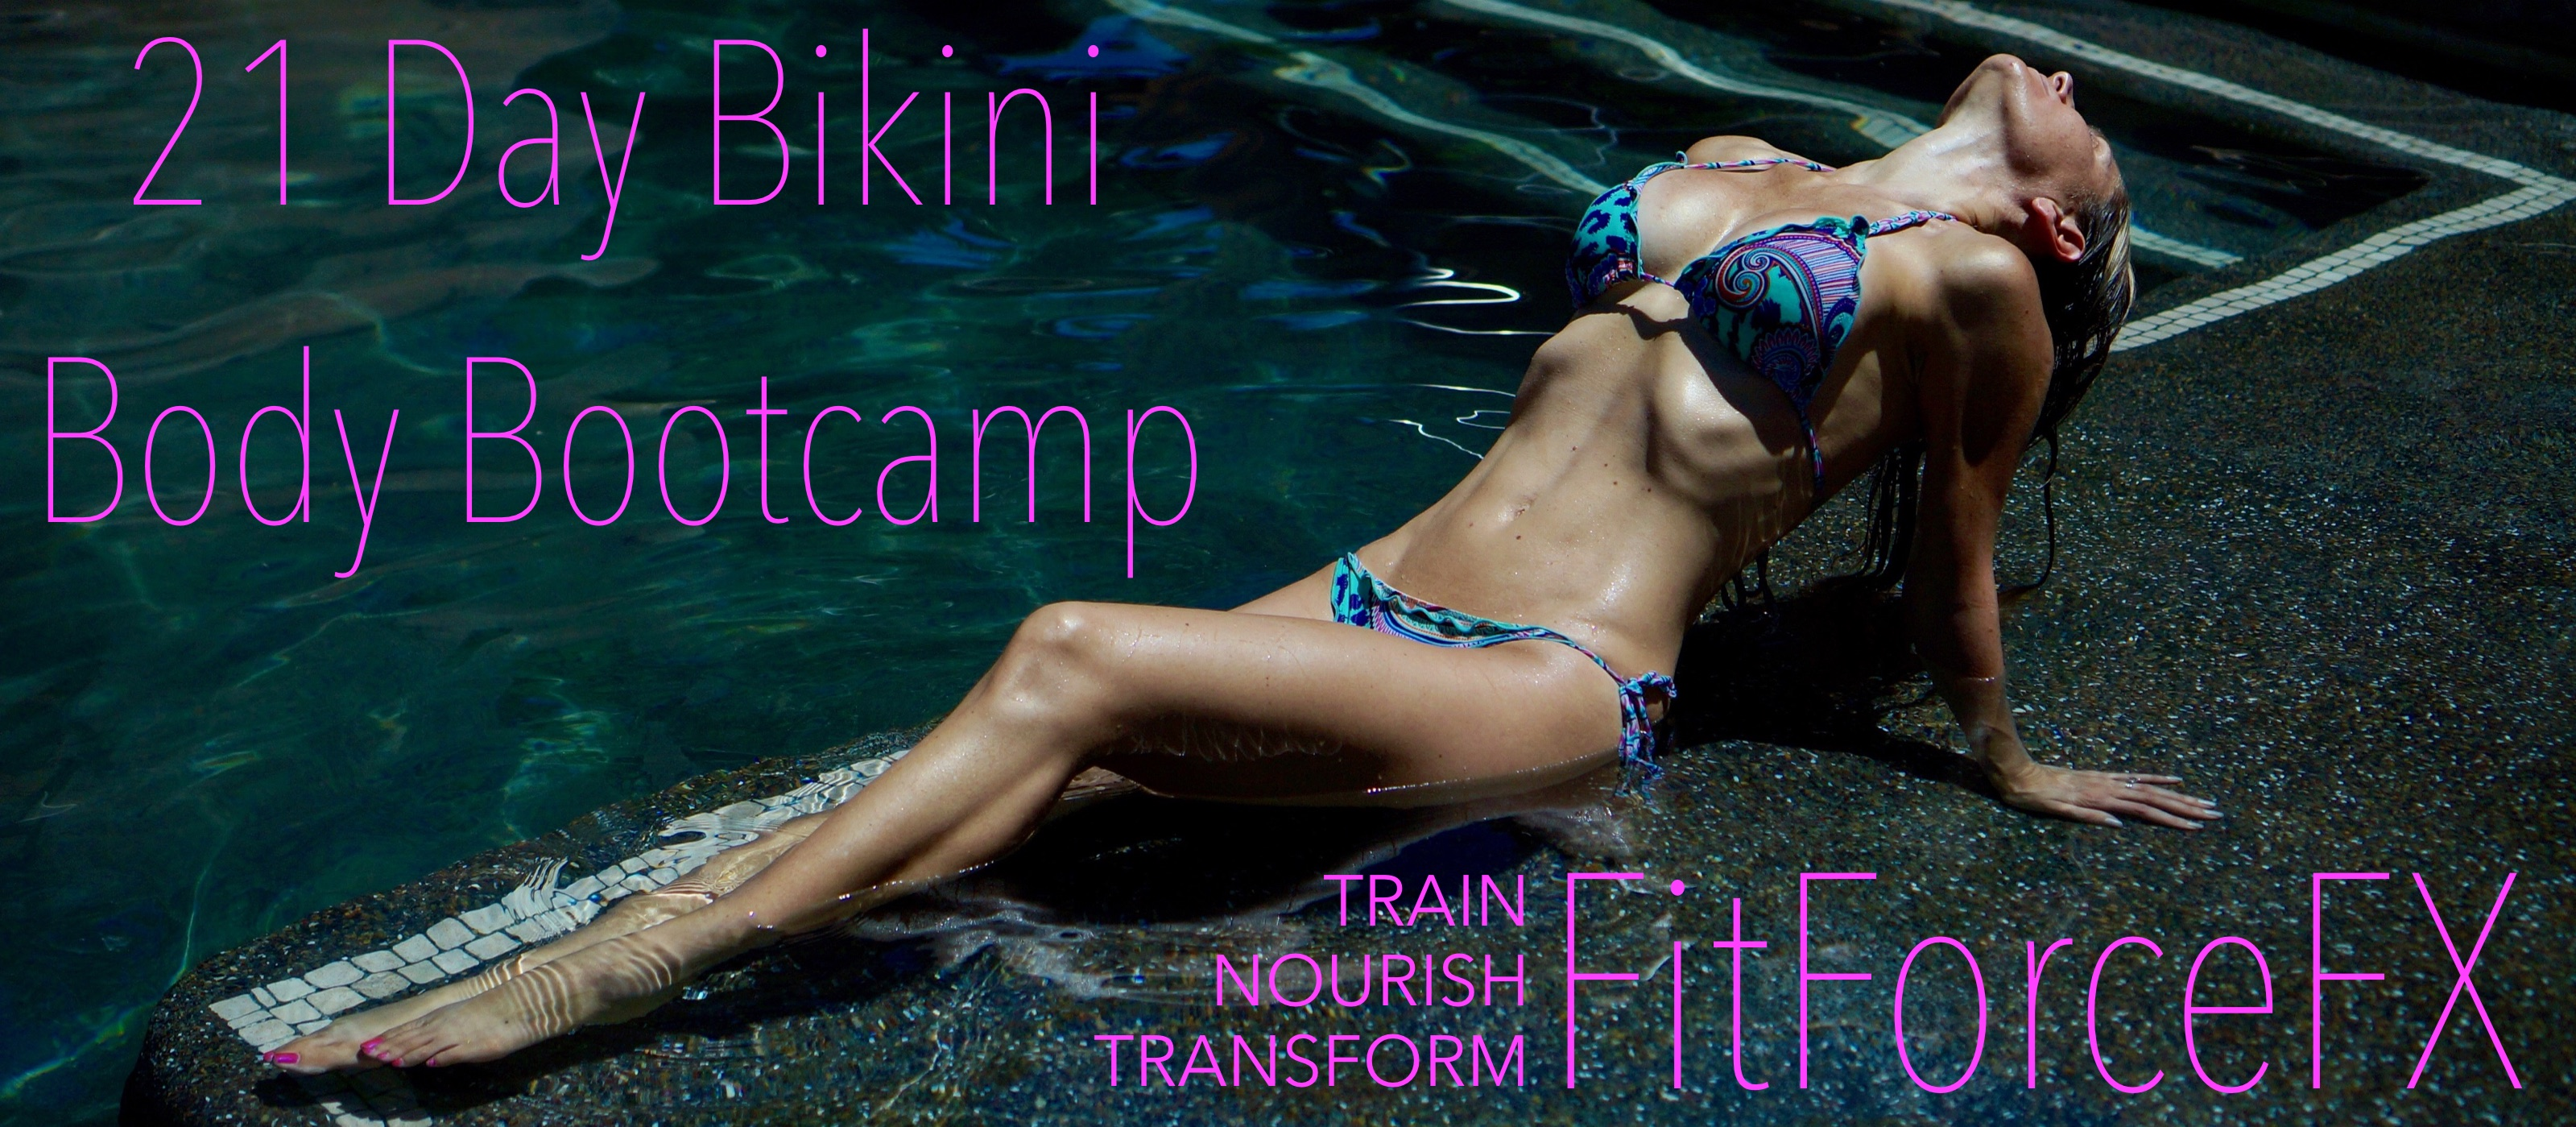 21 Day Bikini Body Bootcamp • Week 1